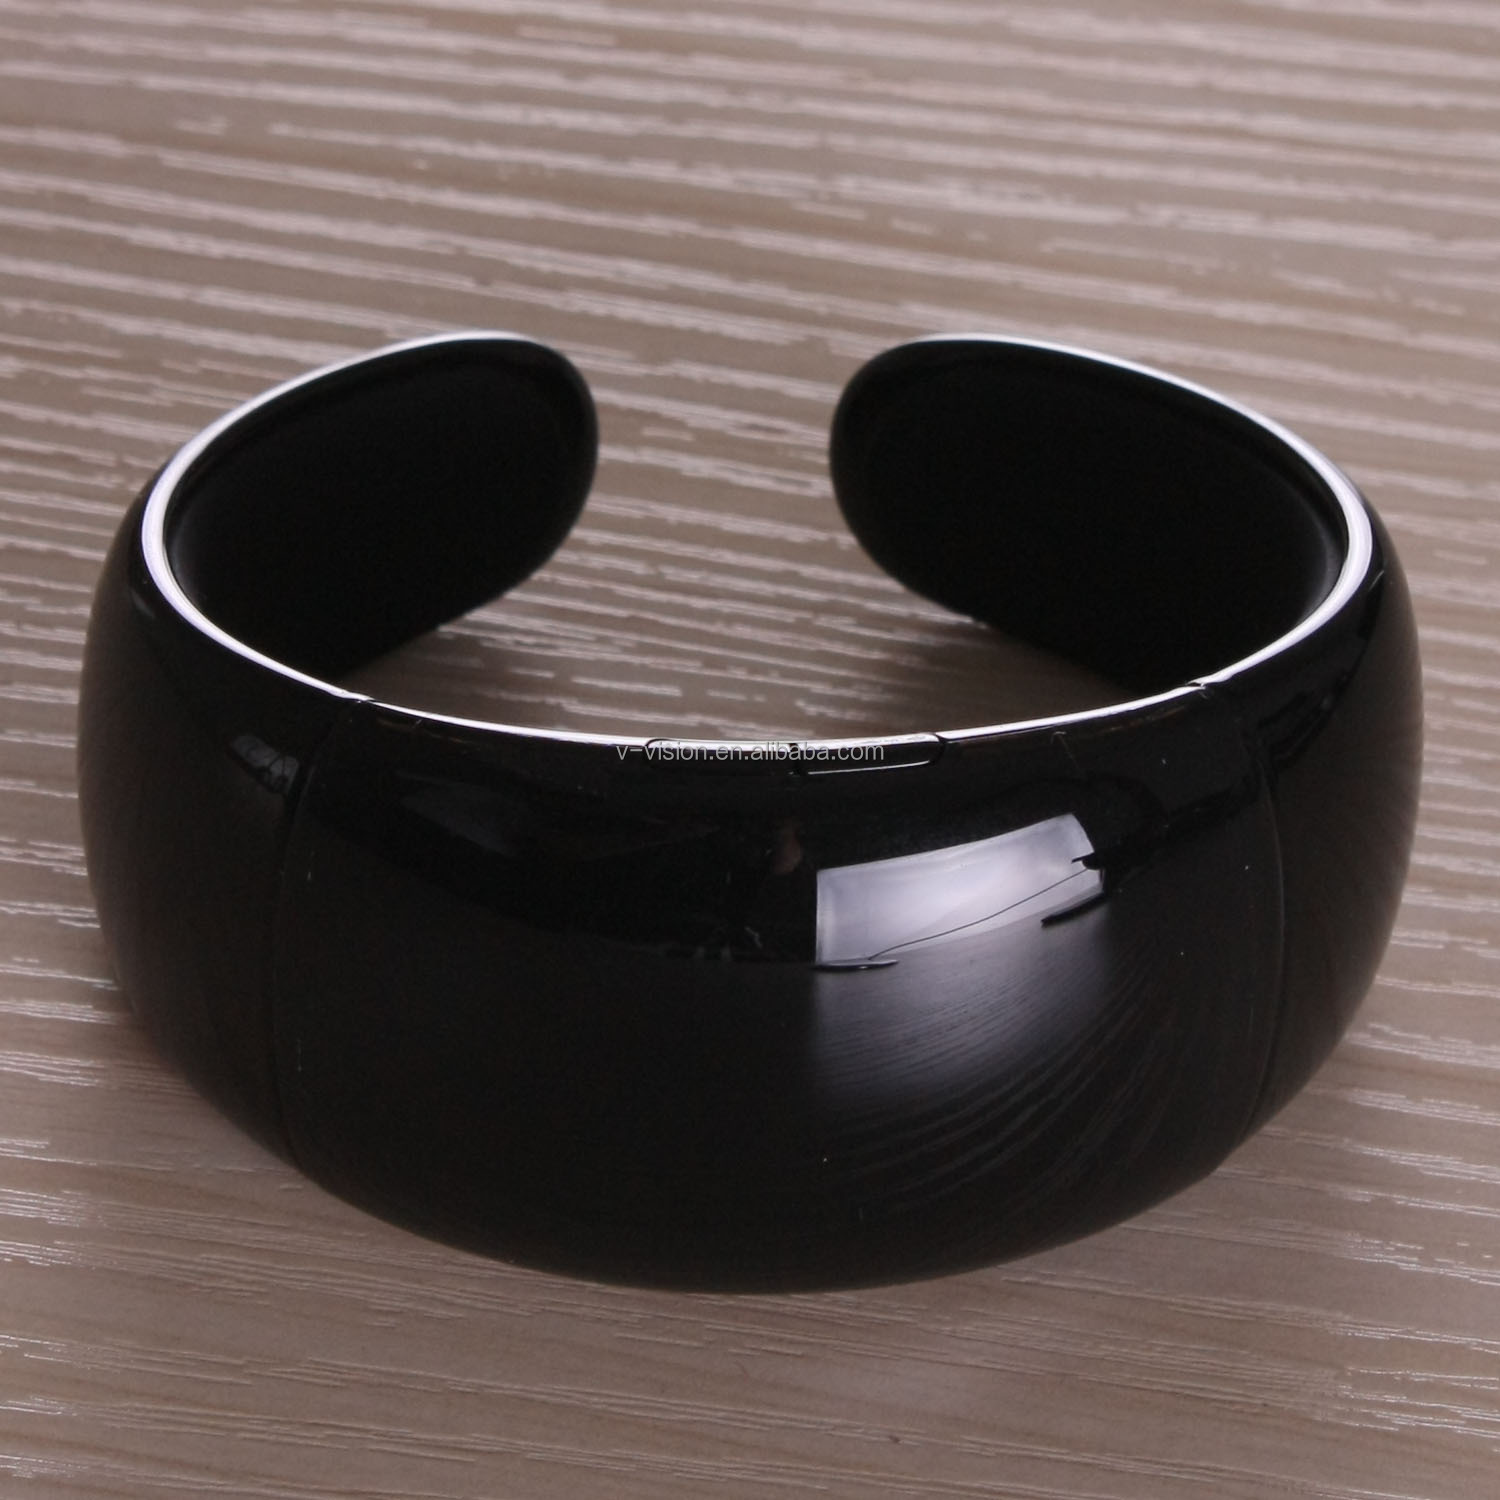 2014 New !!! Led bluetooth bracelet with vibration and caller id can answer the call